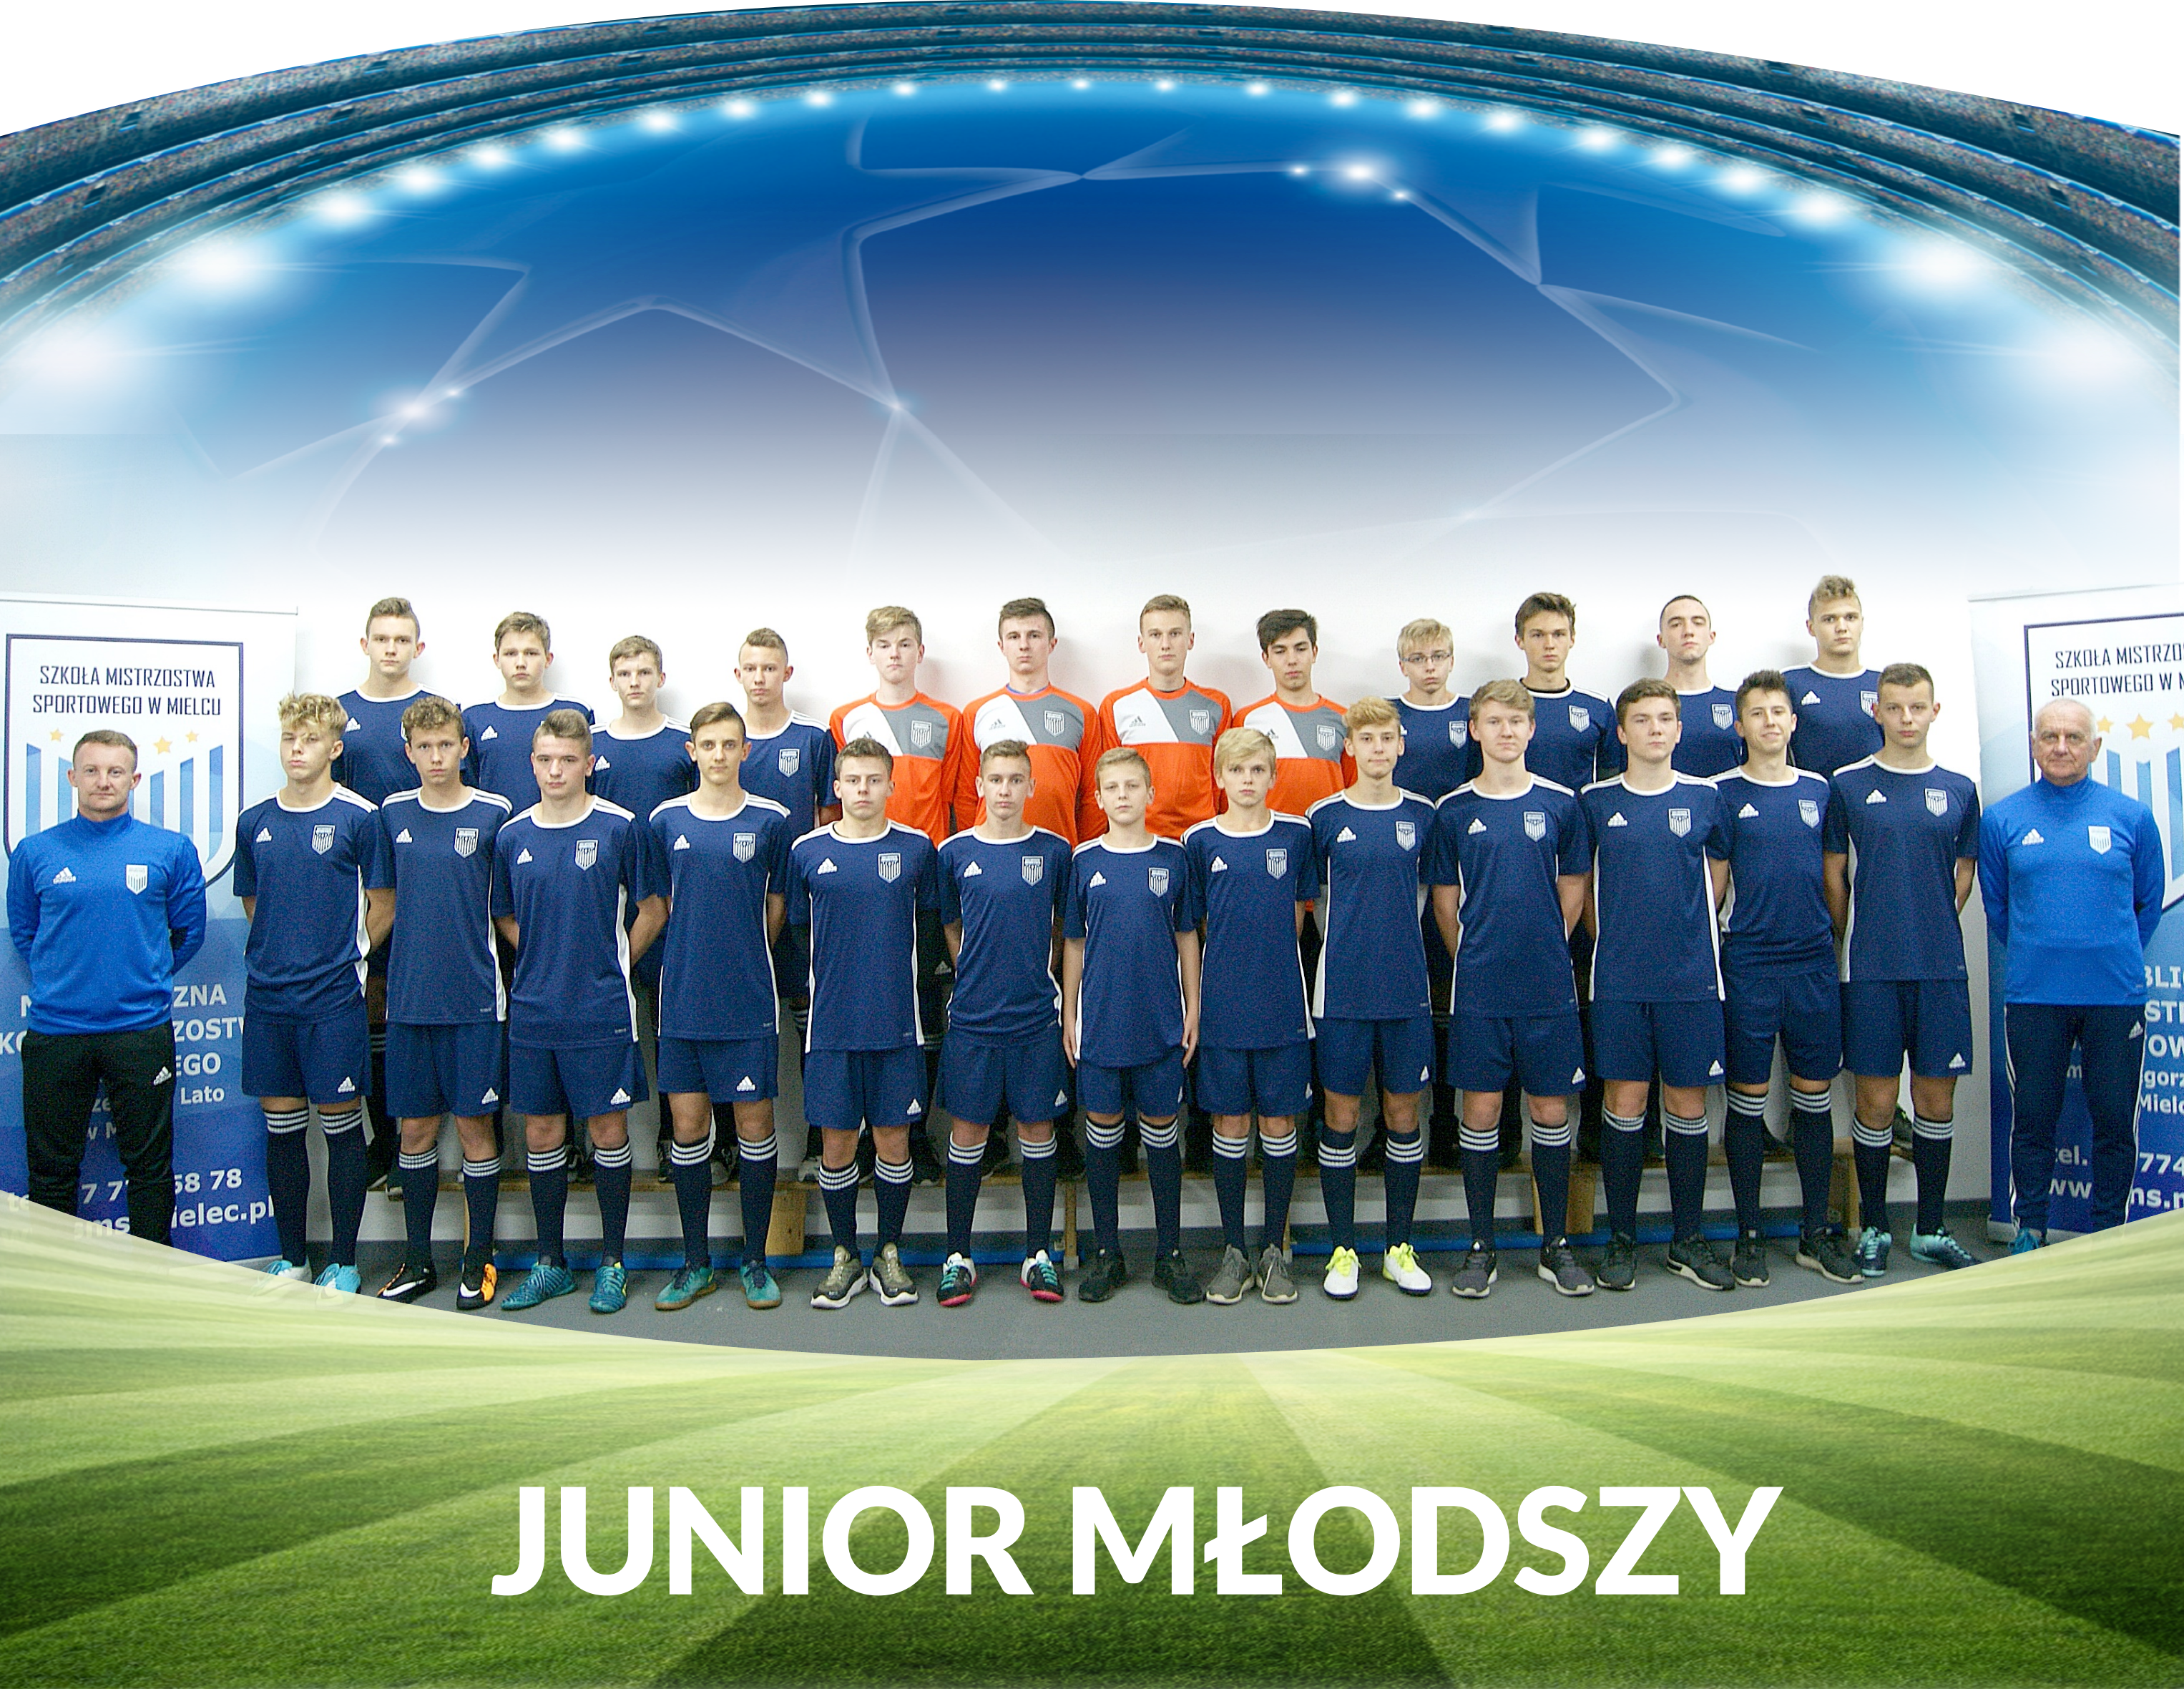 JUNIOR MLODSZY